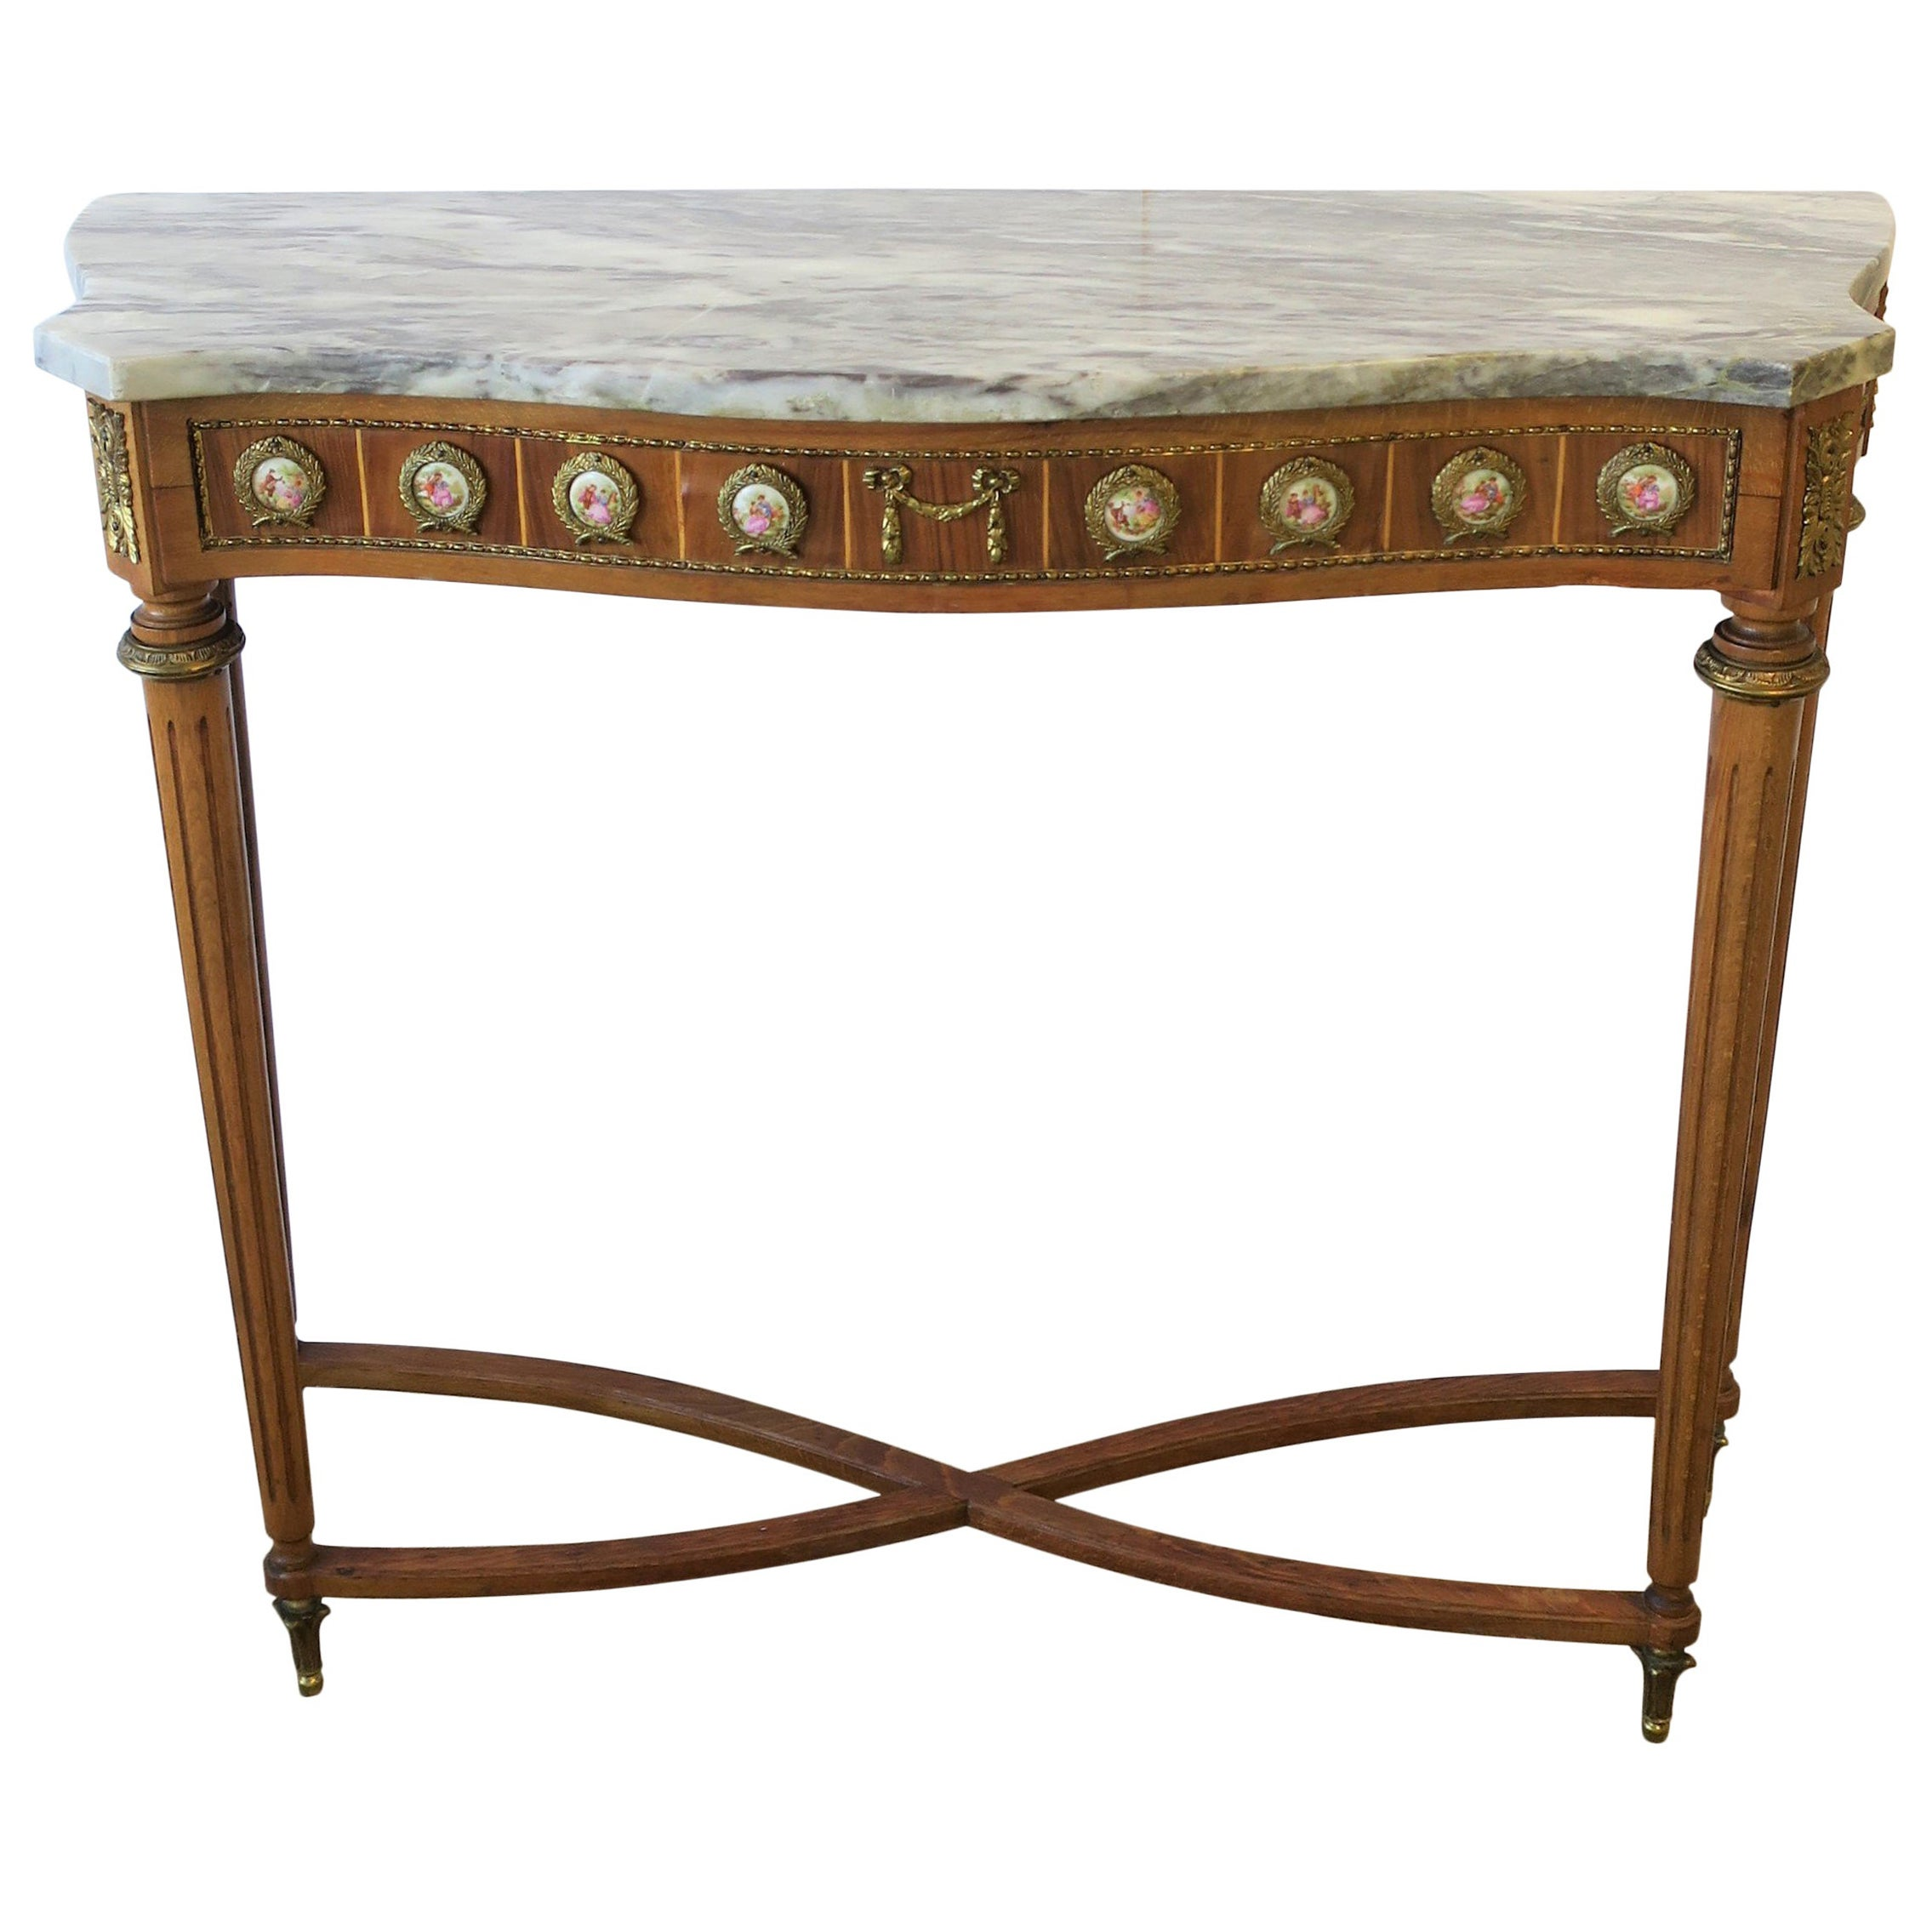 Neoclassical Marble and Brass Console Table